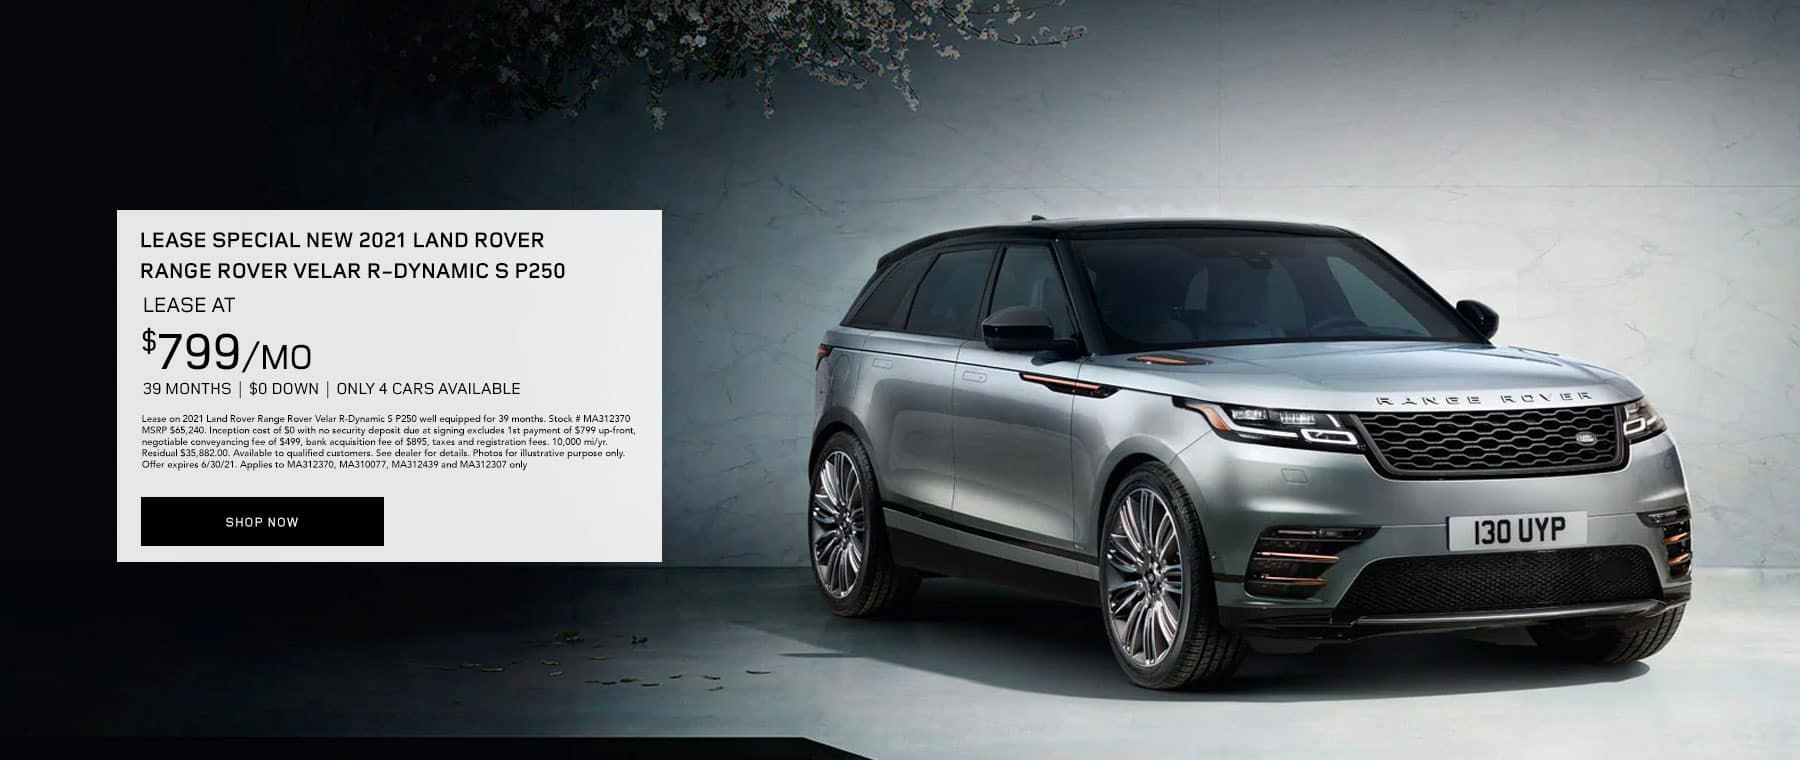 LEASE SPECIAL 2021 Land Rover Range Rover Velar R-Dynamic S P250